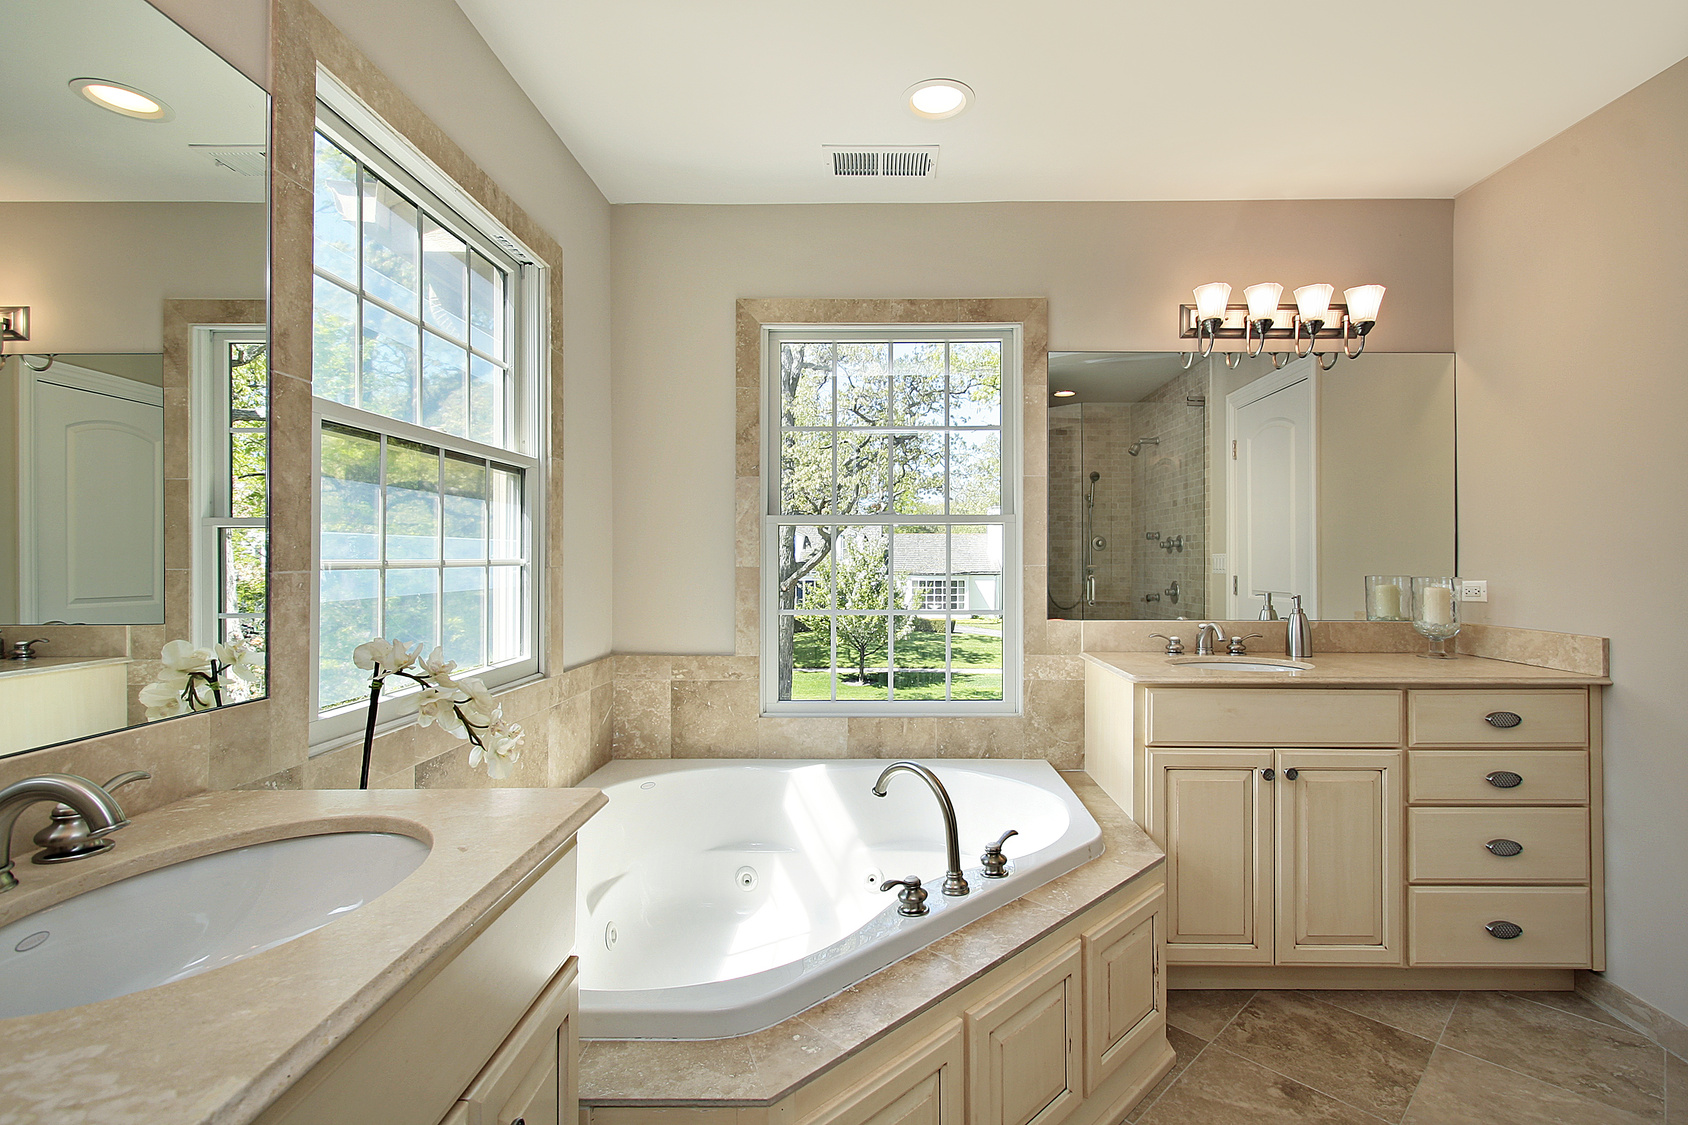 Bathroom Remodeling Dallas bathroom remodeling - interior design